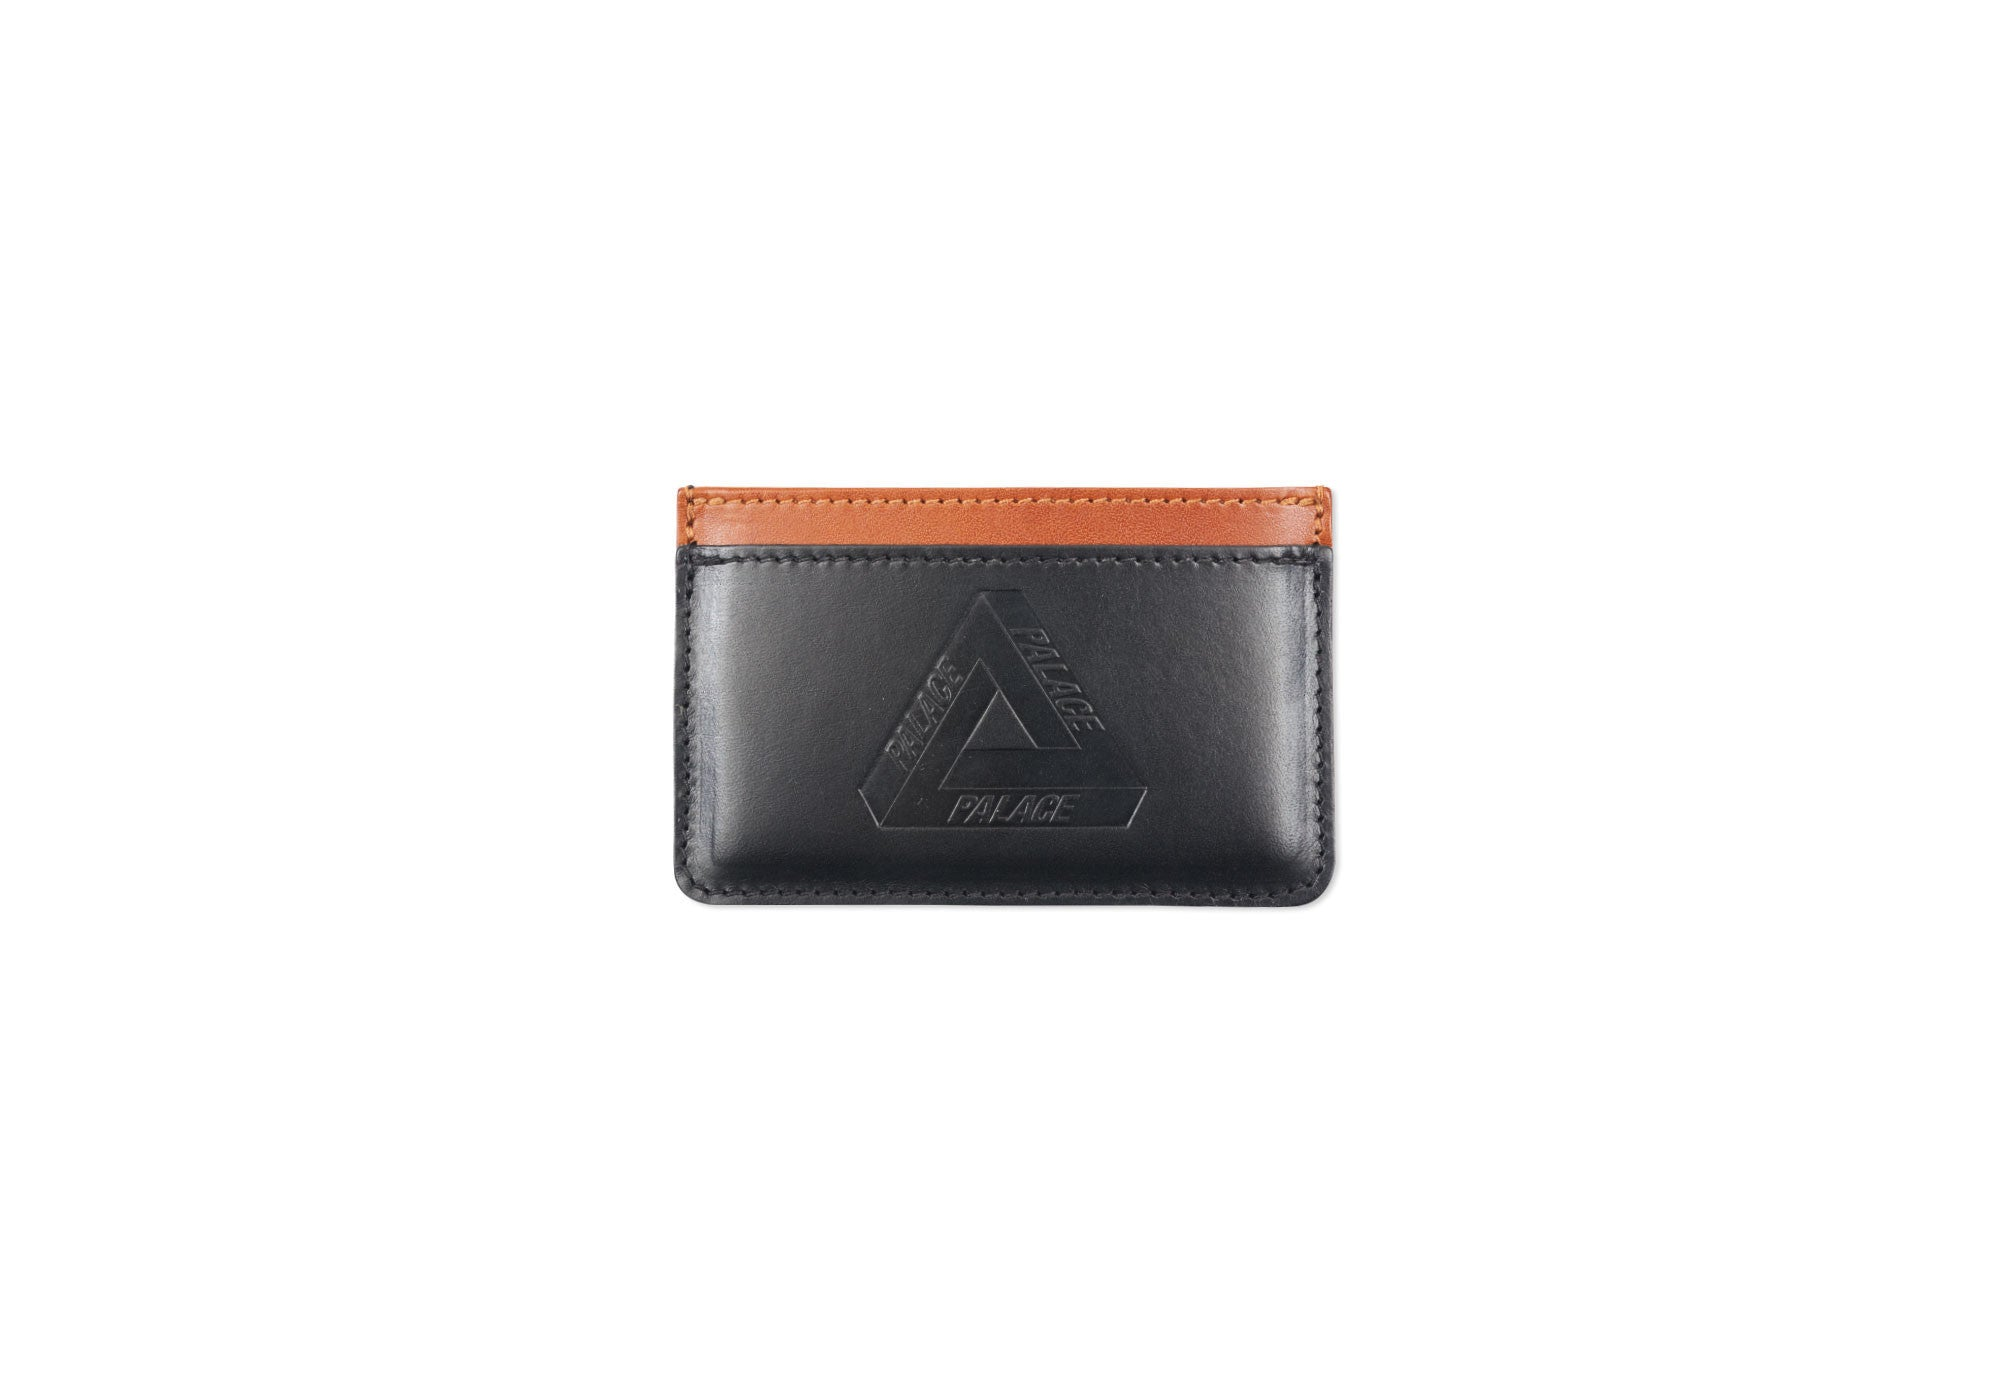 CARD HOLDER BLACK TRI-FERG